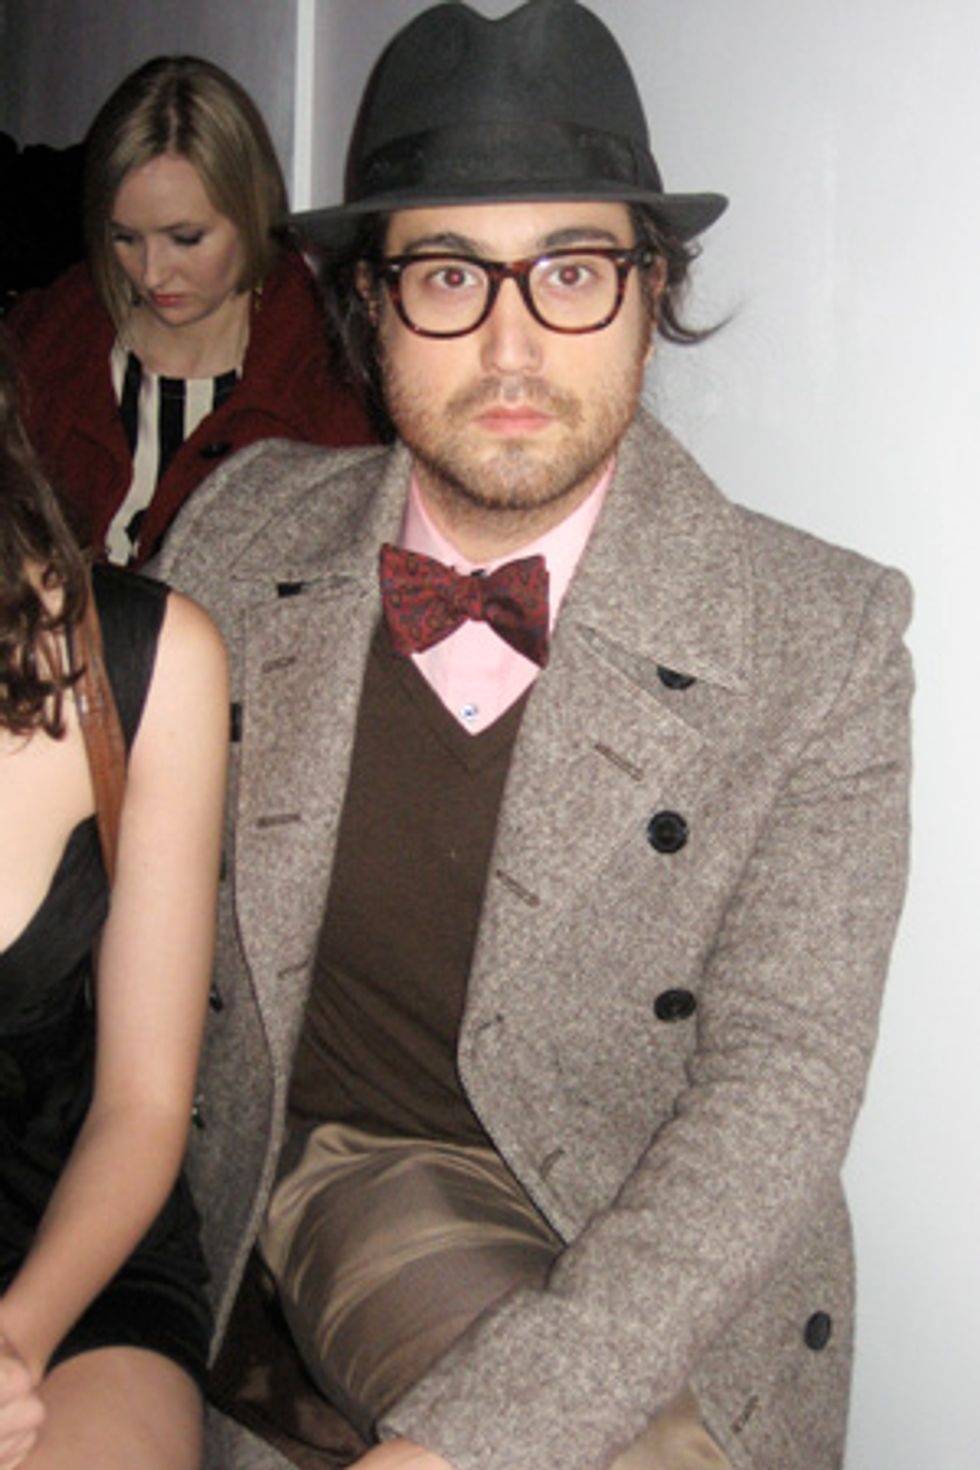 A Quick Chit-Chat With Sean Lennon at the Charlotte Ronson Show